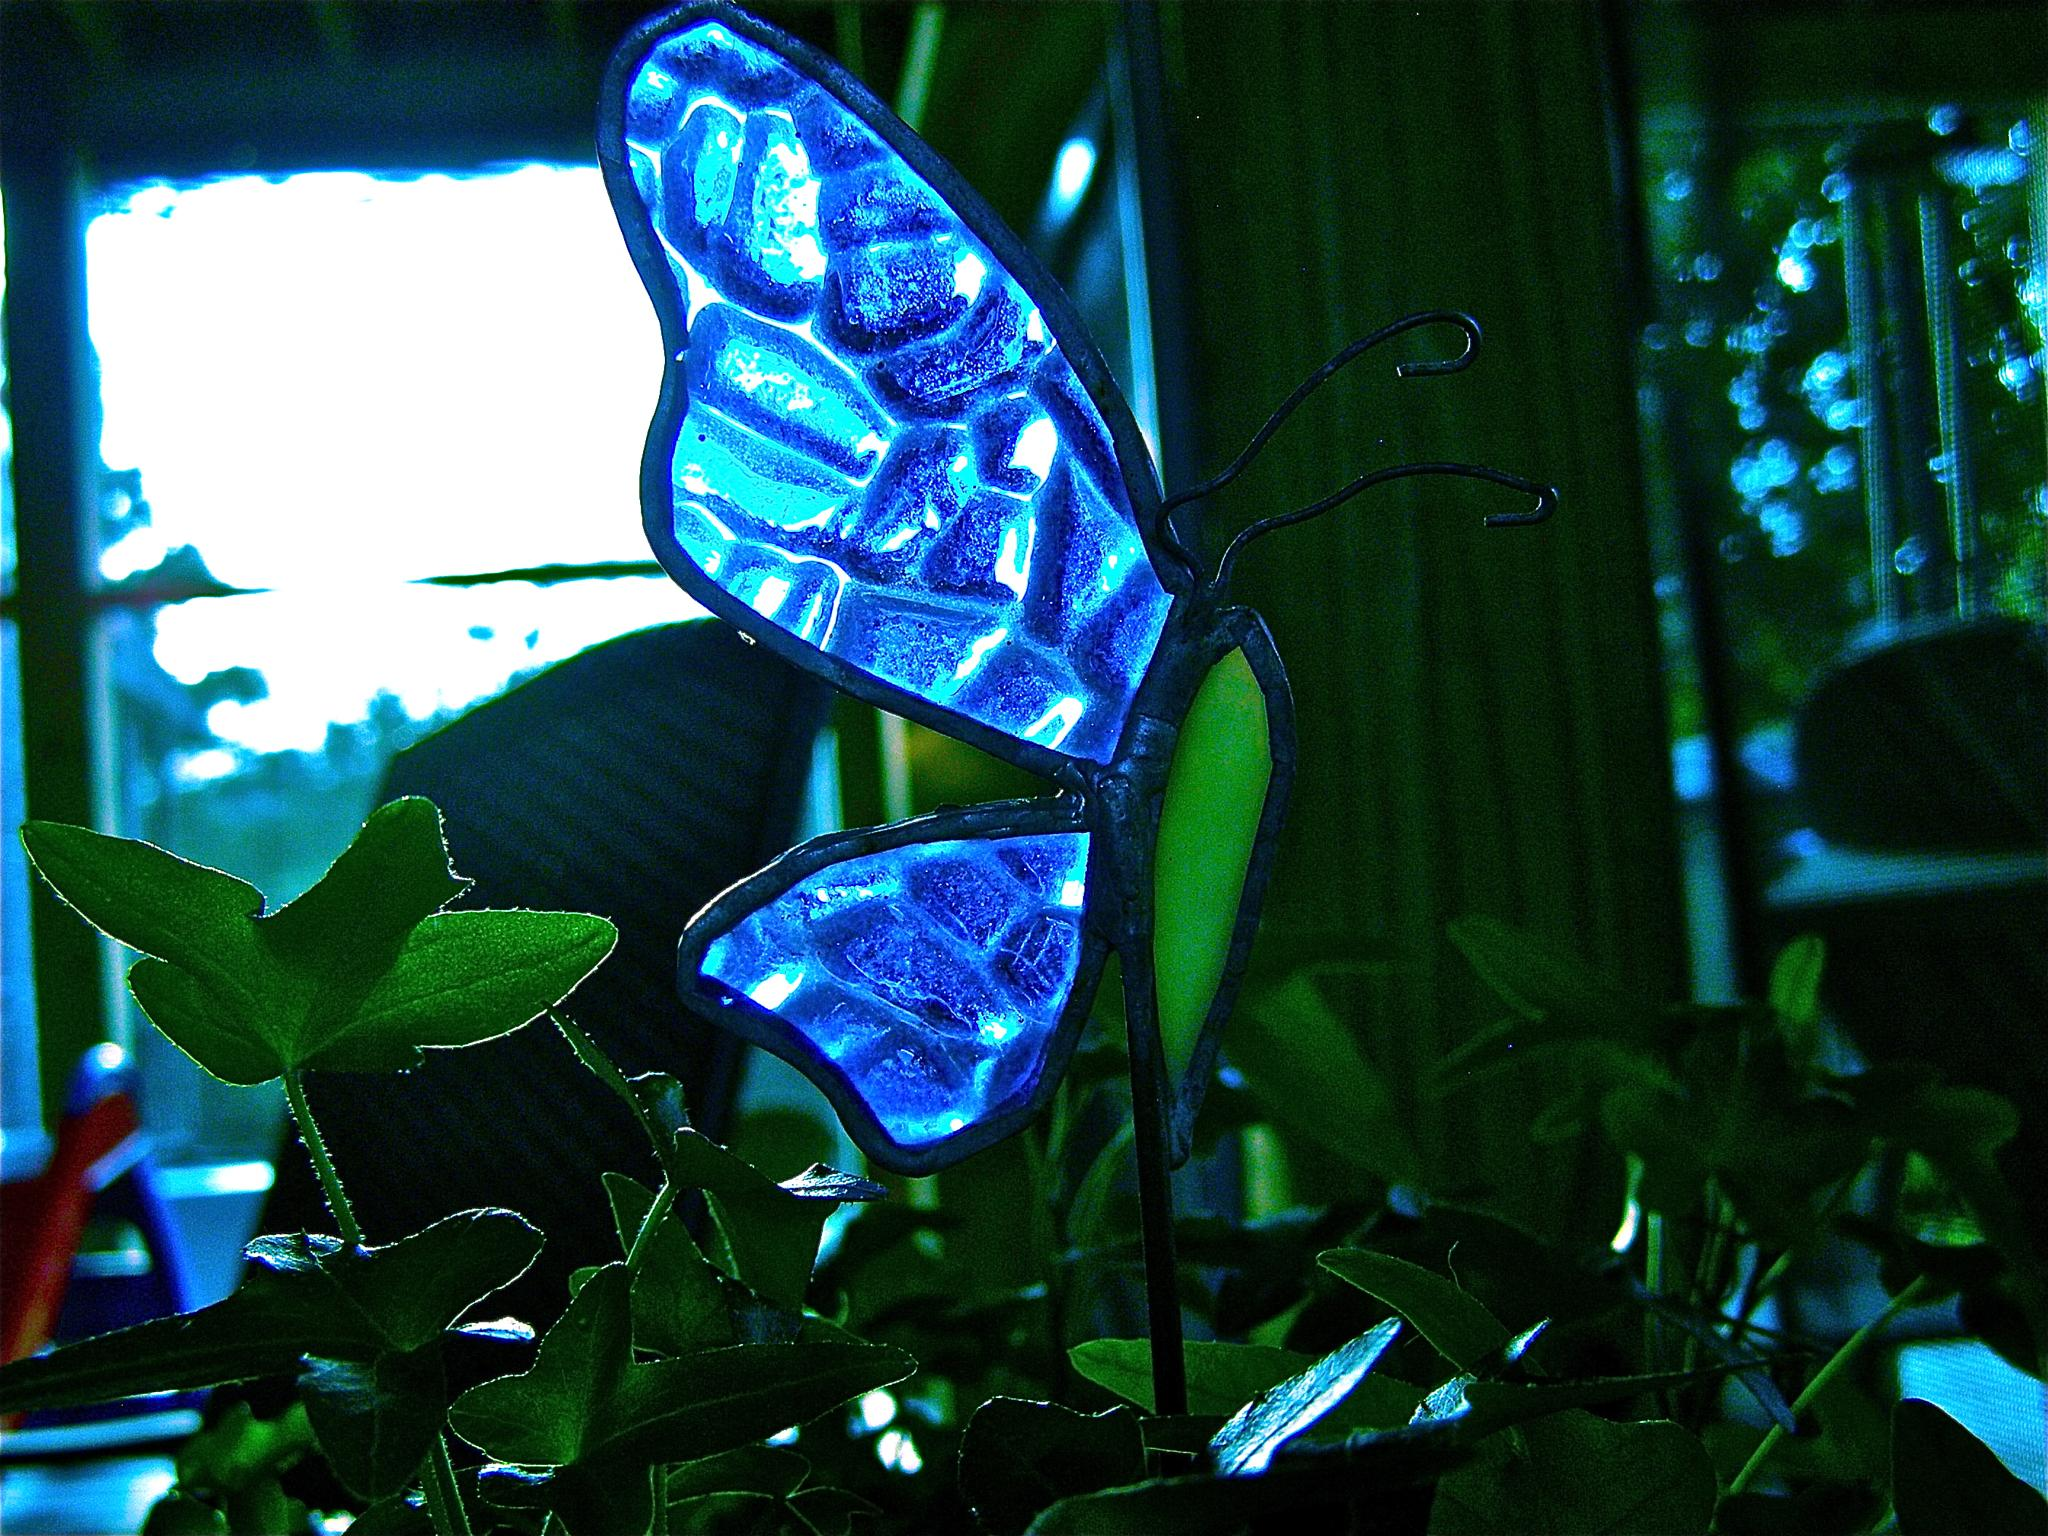 Stained Glass Butterfly by gloria.west.12